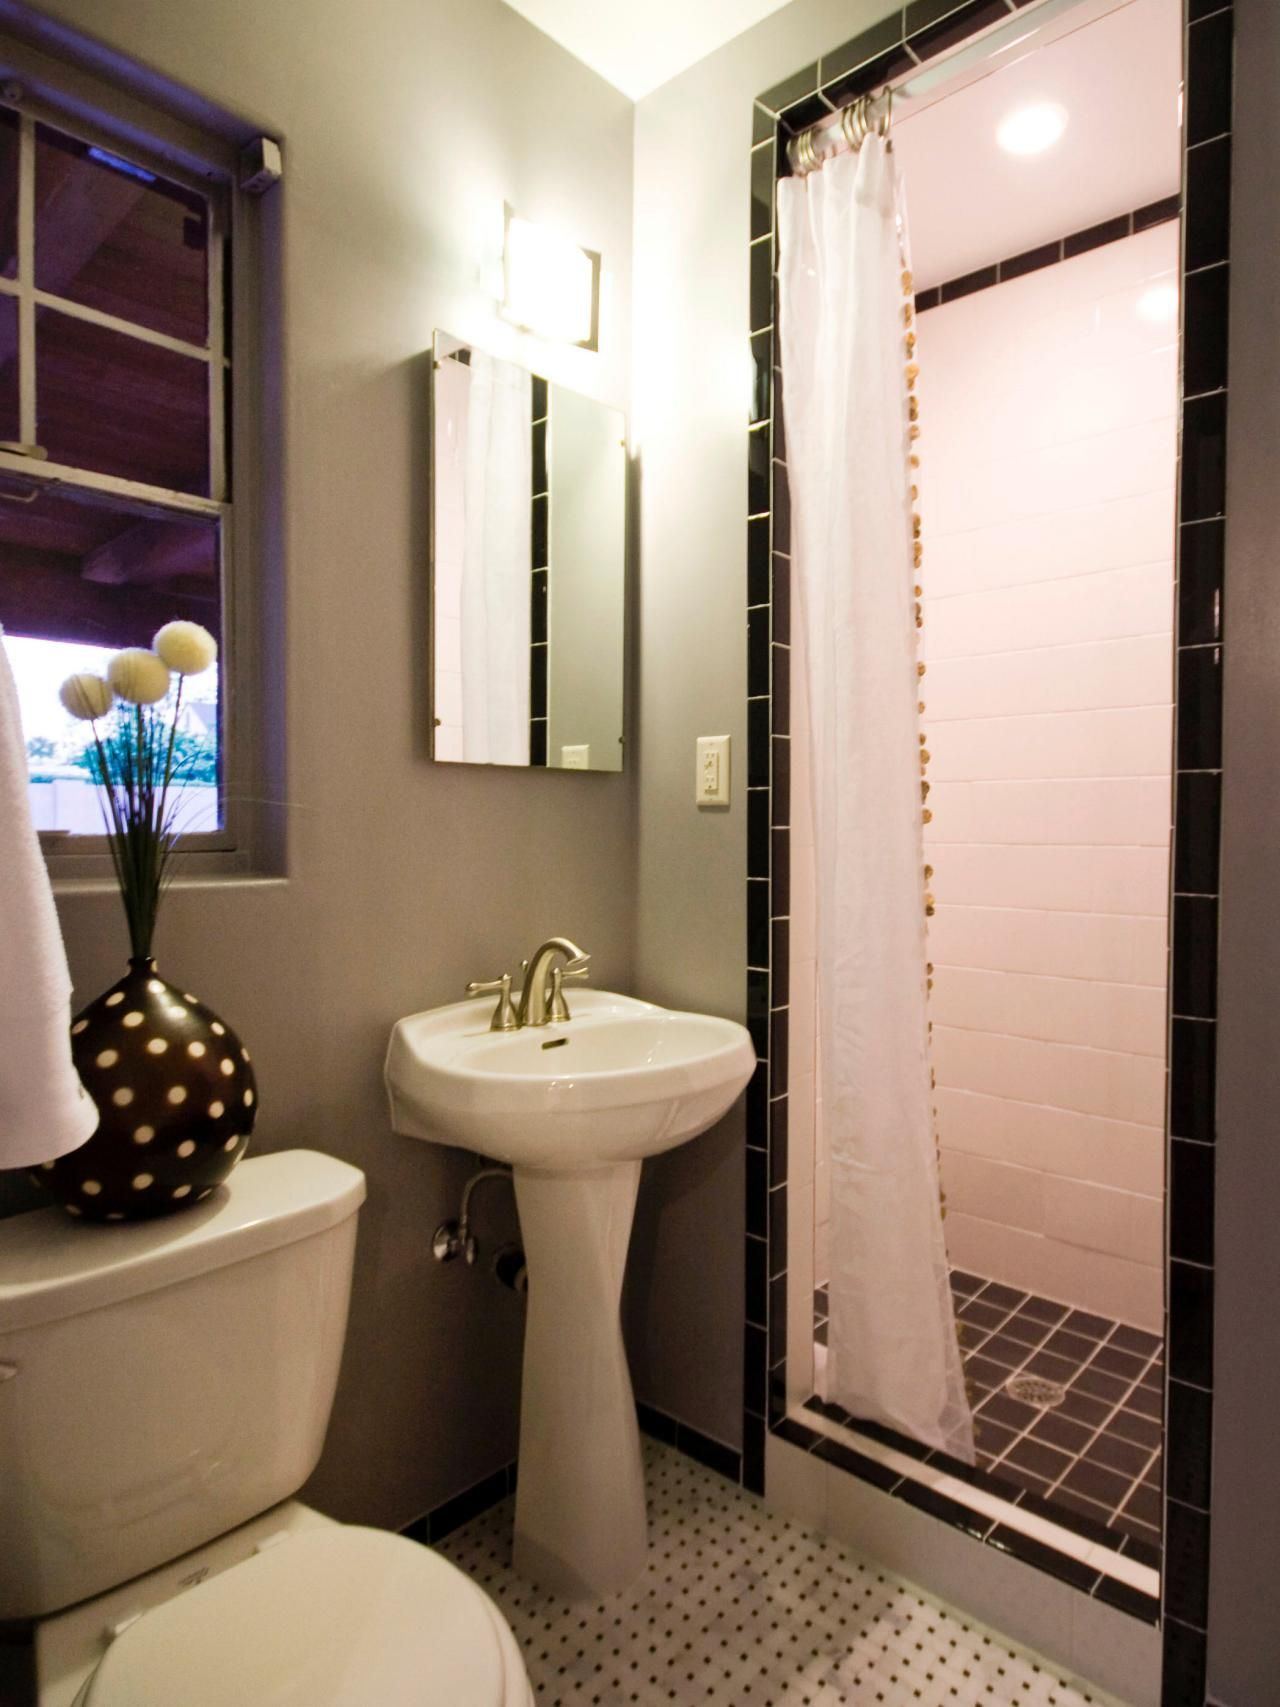 Hgtvremodels Bathroom Planning Guide Offers Three Quarter Bath Design Tips For